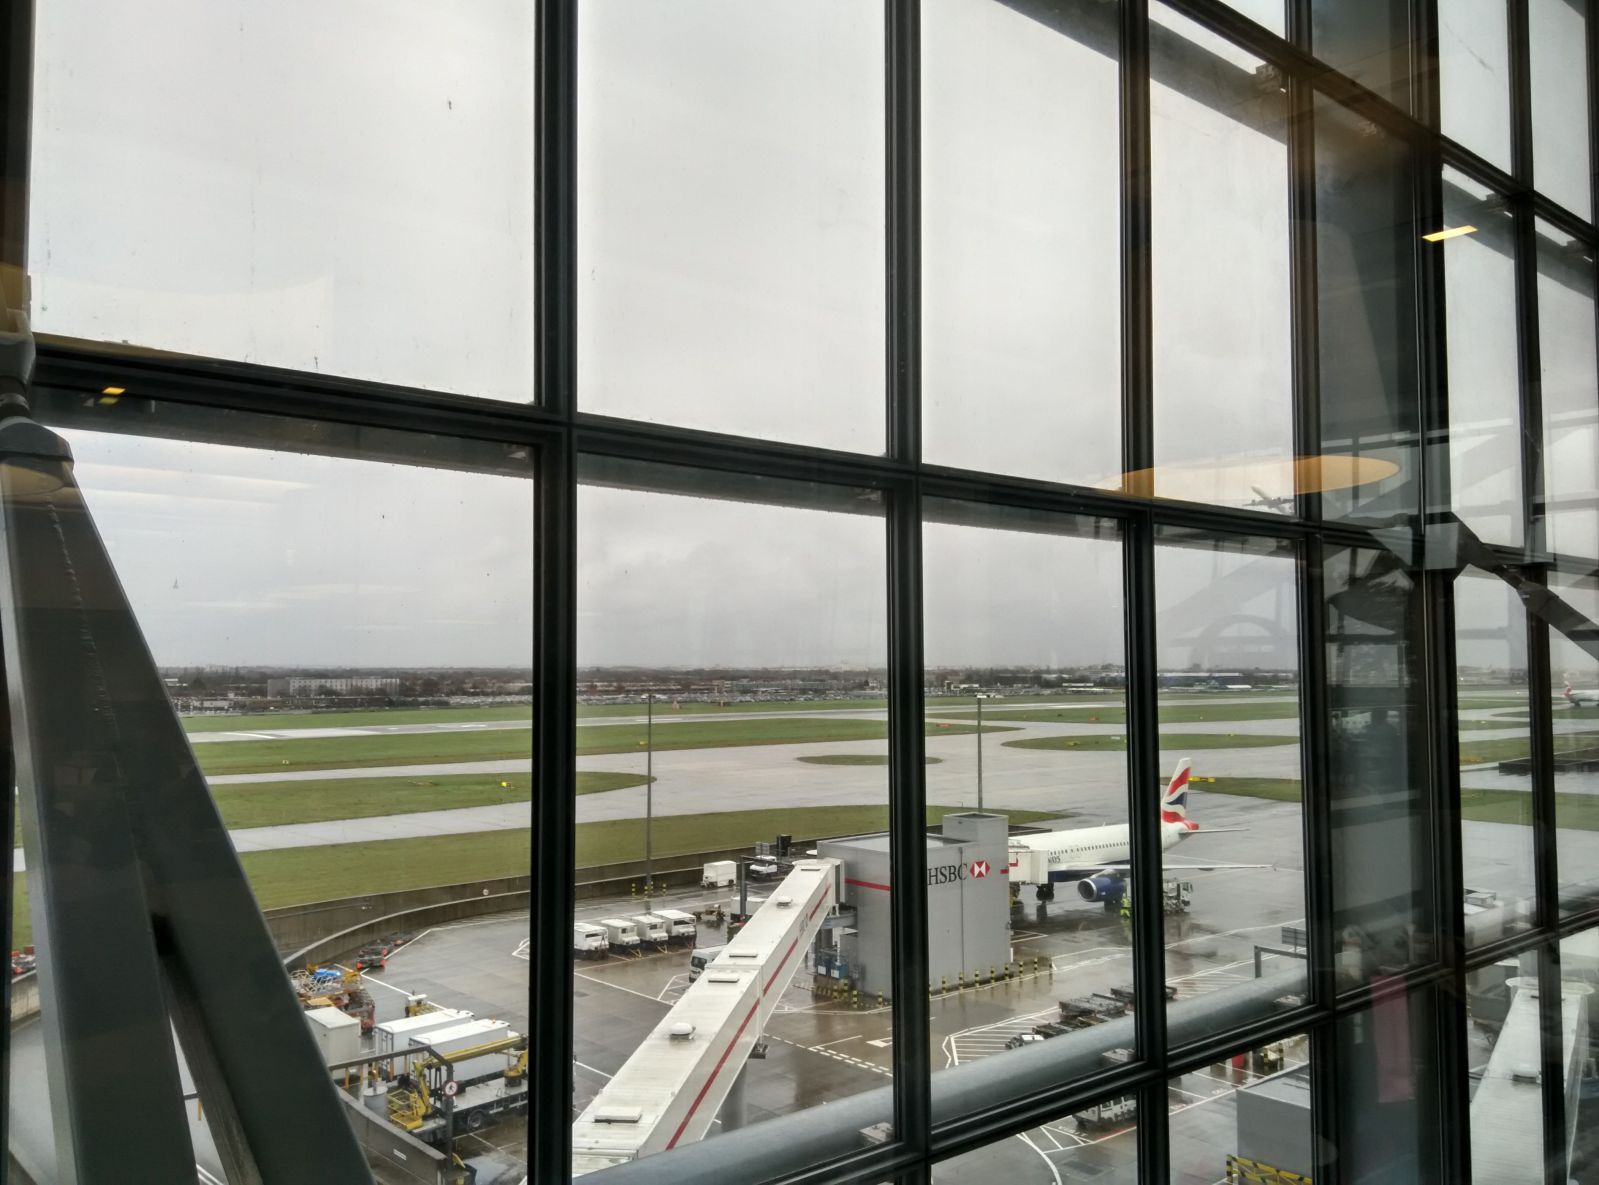 heathrow-t5-galleries-north-view